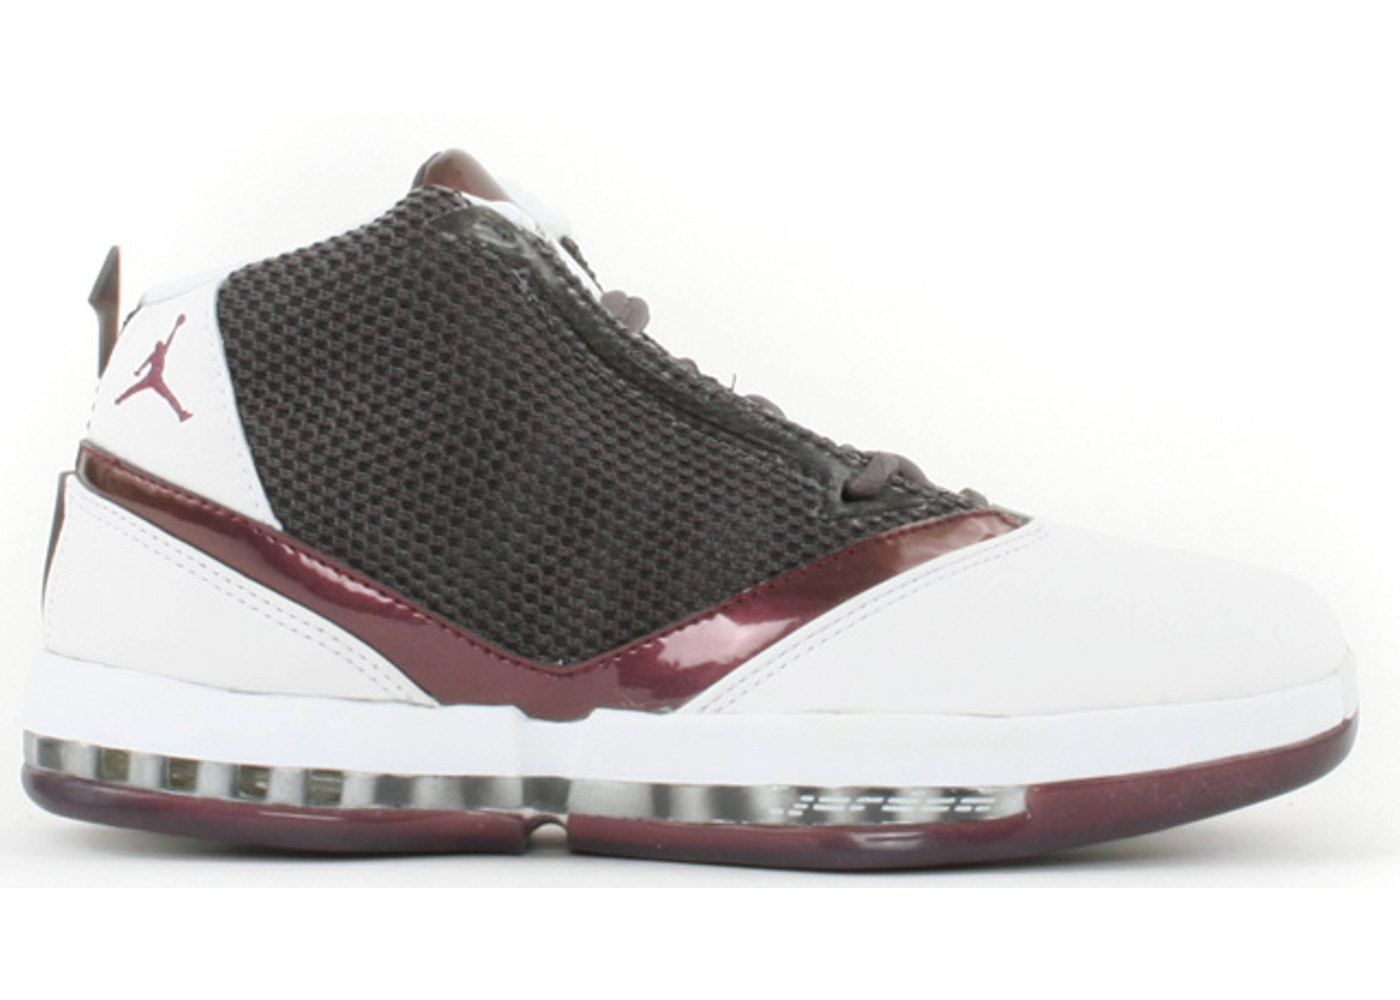 239bce4cf2f Sell. or Ask. Size: 10. View All Bids. Jordan 16 OG Cherrywood